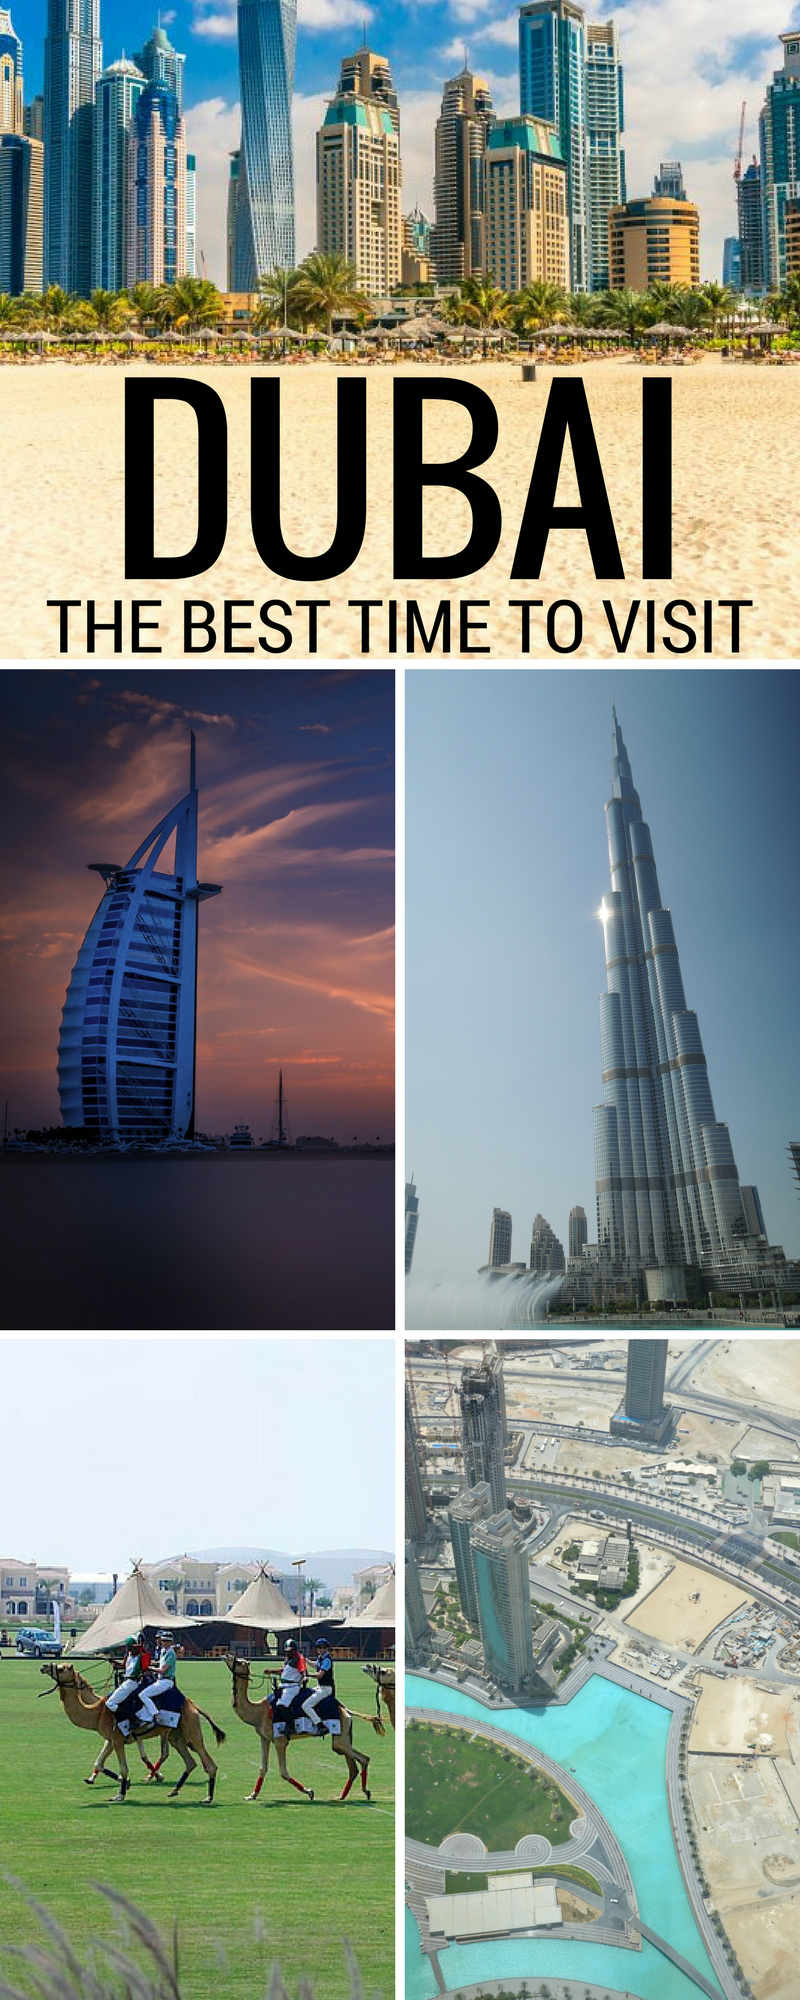 The Best Time to Visit Dubai Since air condition is rampant throughout the city, and people do live there year round, it's definitely accessible for most of the year however, if you really want to enjoy your trip, the best time to visit Dubai is from early November to late March.